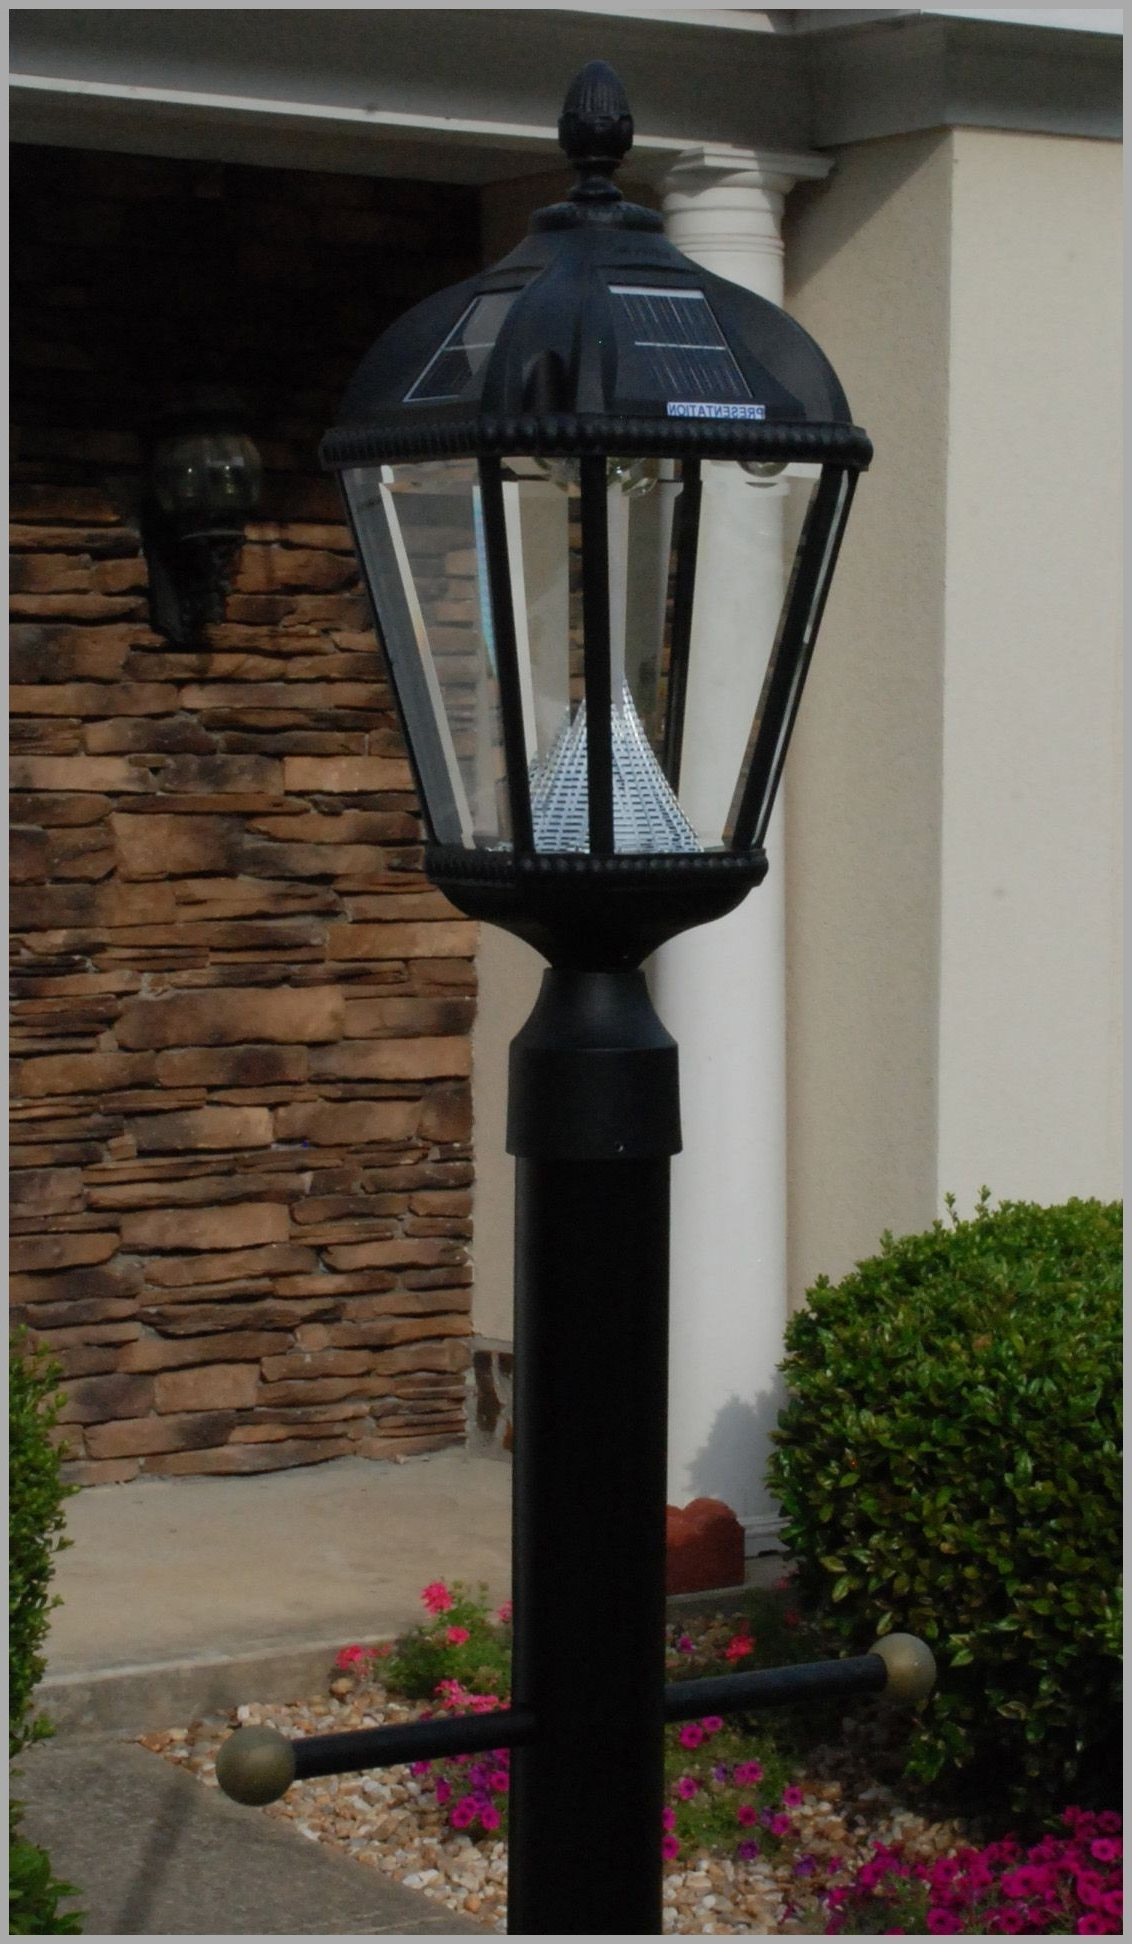 Well Known Solar Driveway Lights At Home Depot With Lighting : Driveway Street Lamps Home Depot Gas Solar Lamp Post (View 20 of 20)